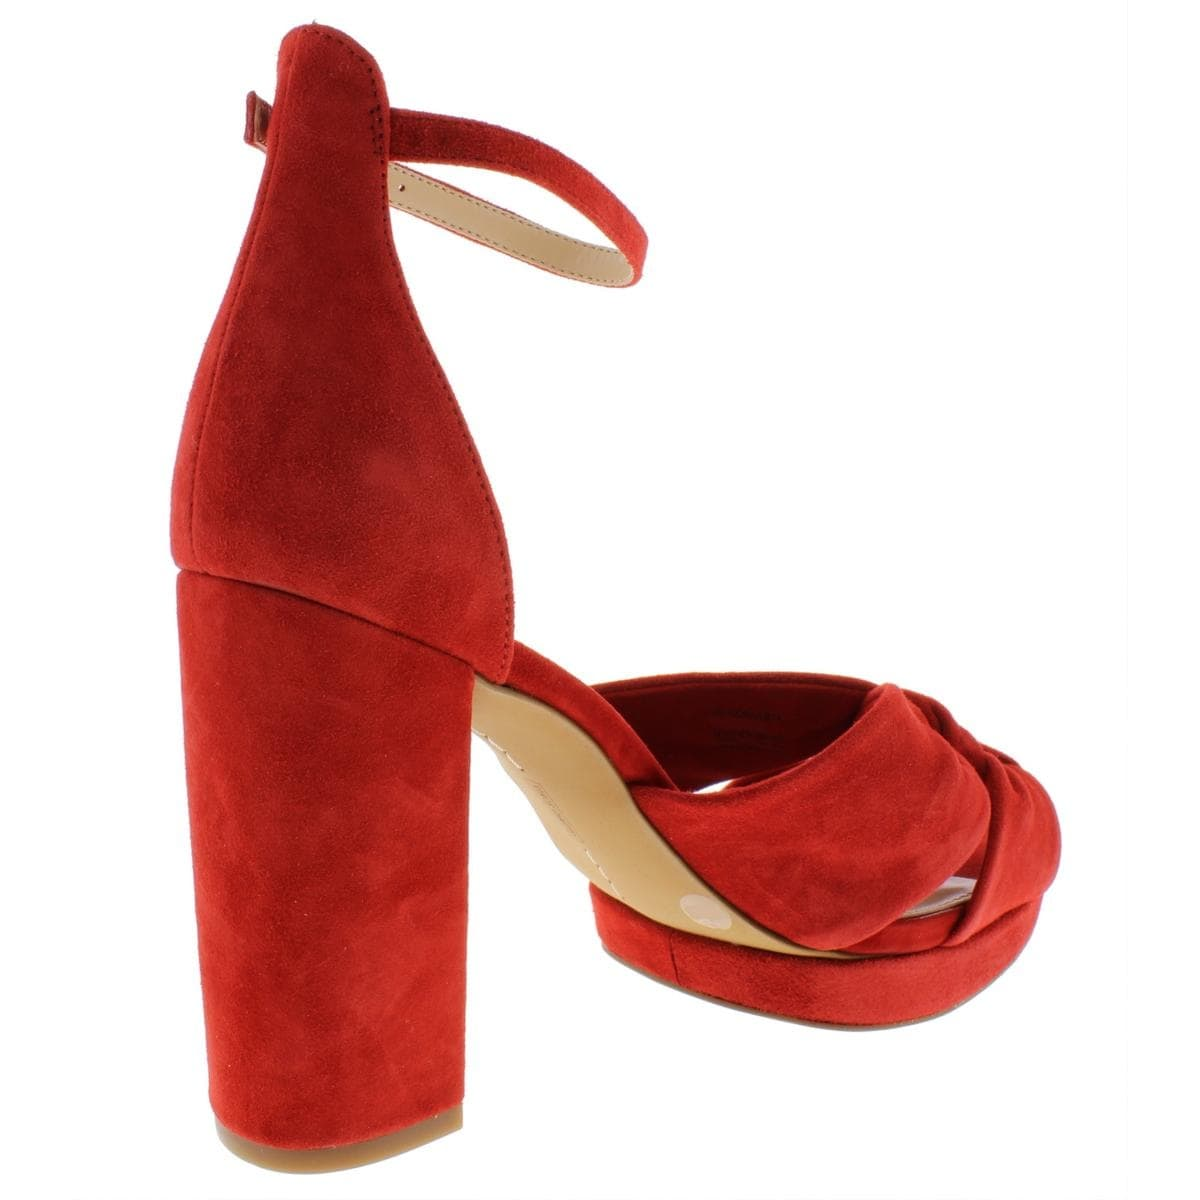 6d41e6a19eb3 Shop Vince Camuto Womens Corlesta D Orsay Heels Suede Block Heel - Free  Shipping Today - Overstock - 27880823